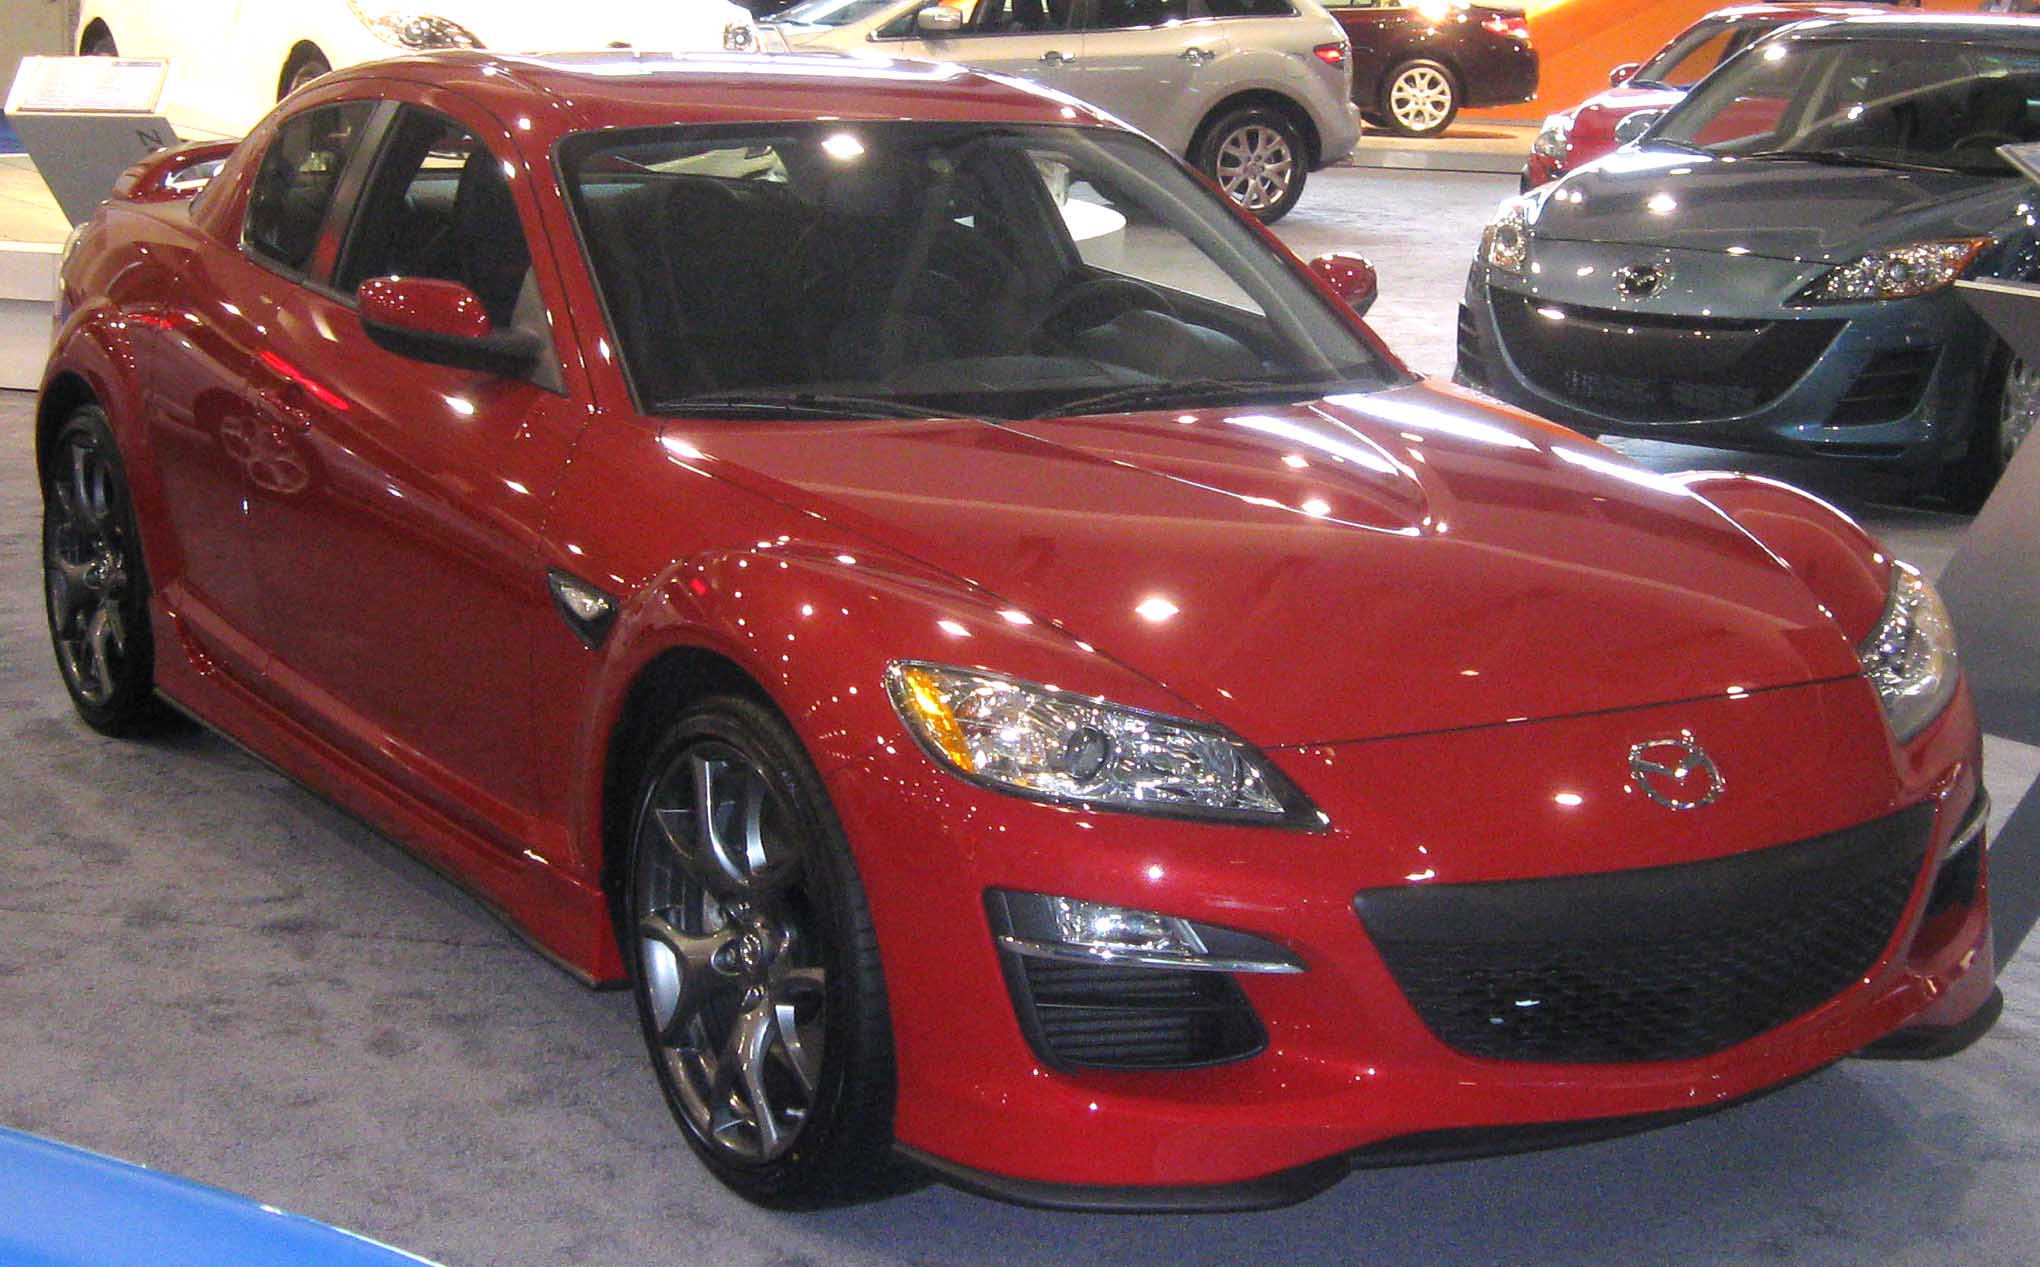 file:2009 mazda rx-8--dc - wikimedia commons